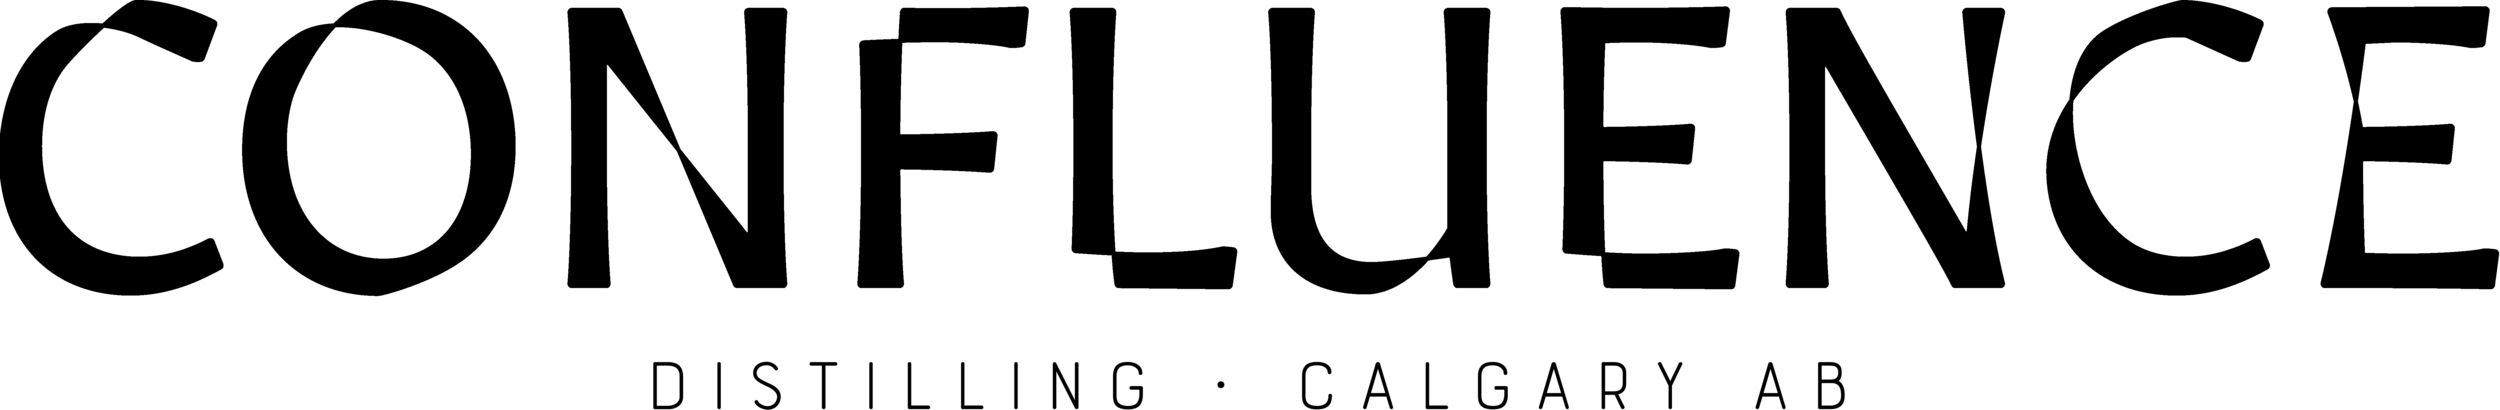 ConfluenceLogo__01a_Primary_Black_filled.png